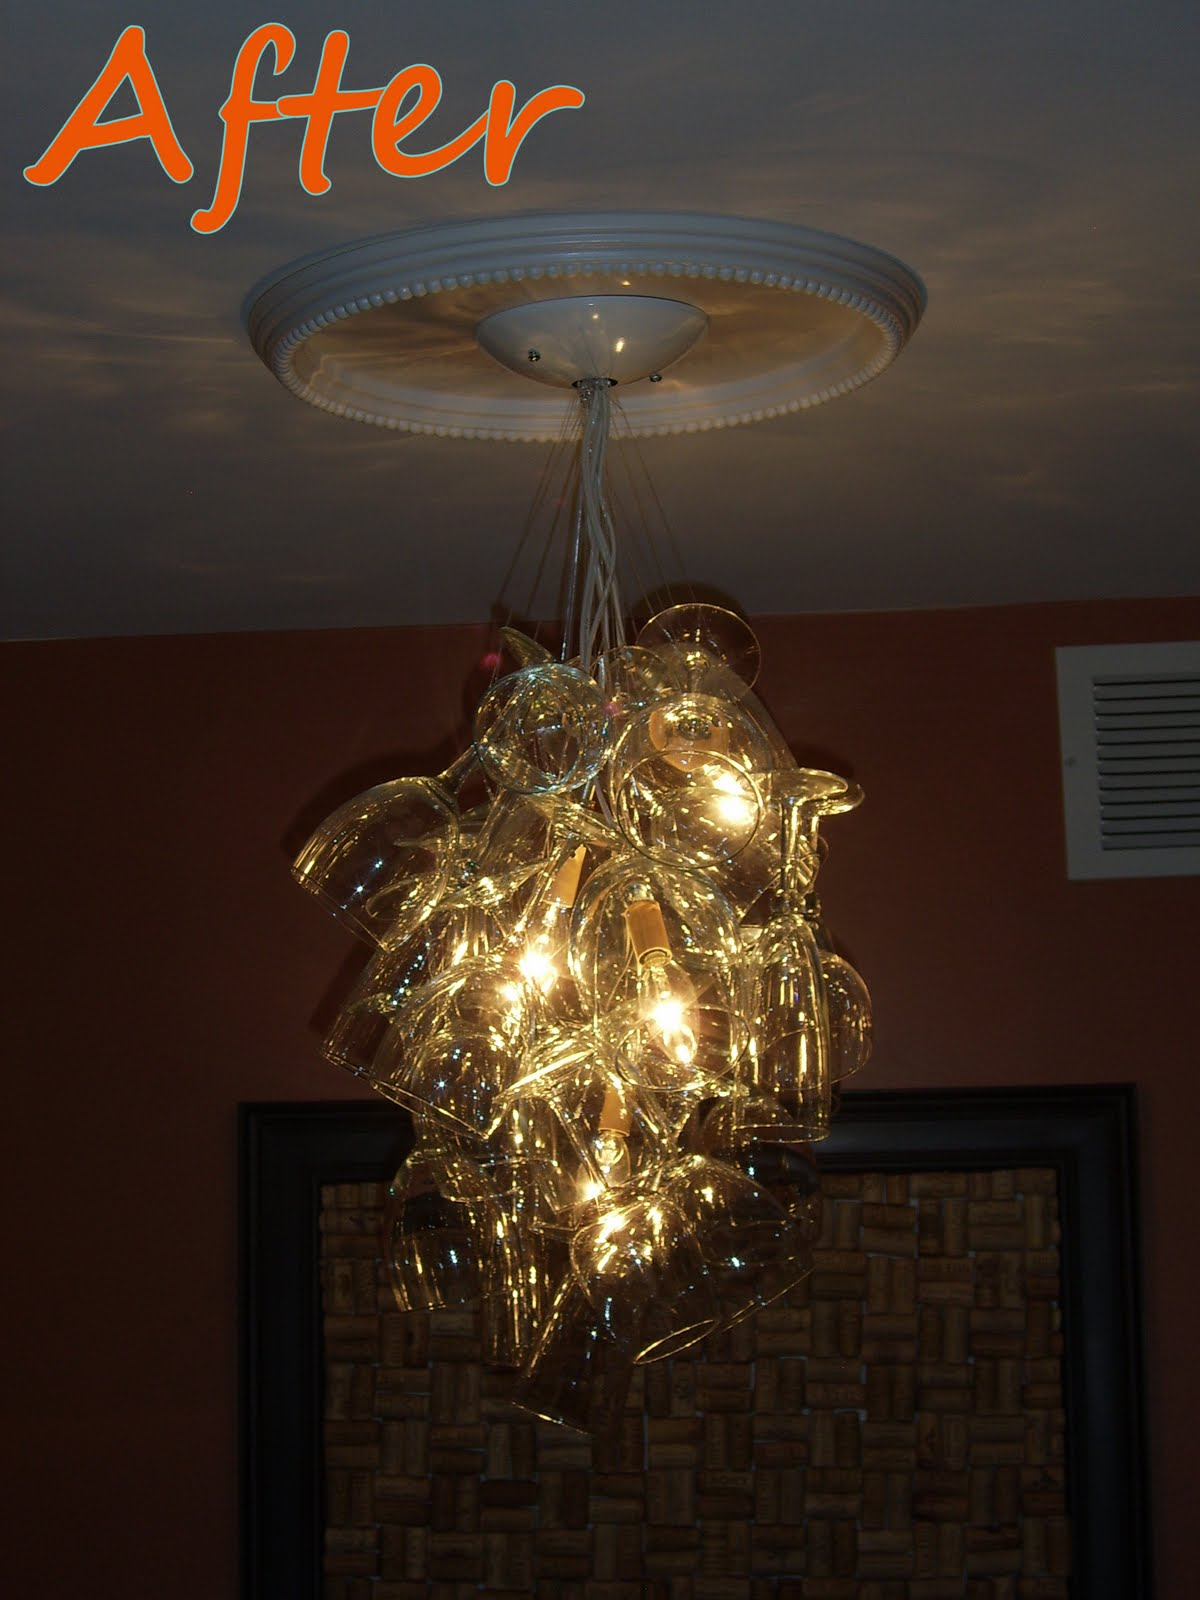 Diy Wine Chandelier: With the lights dimmed down.,Lighting